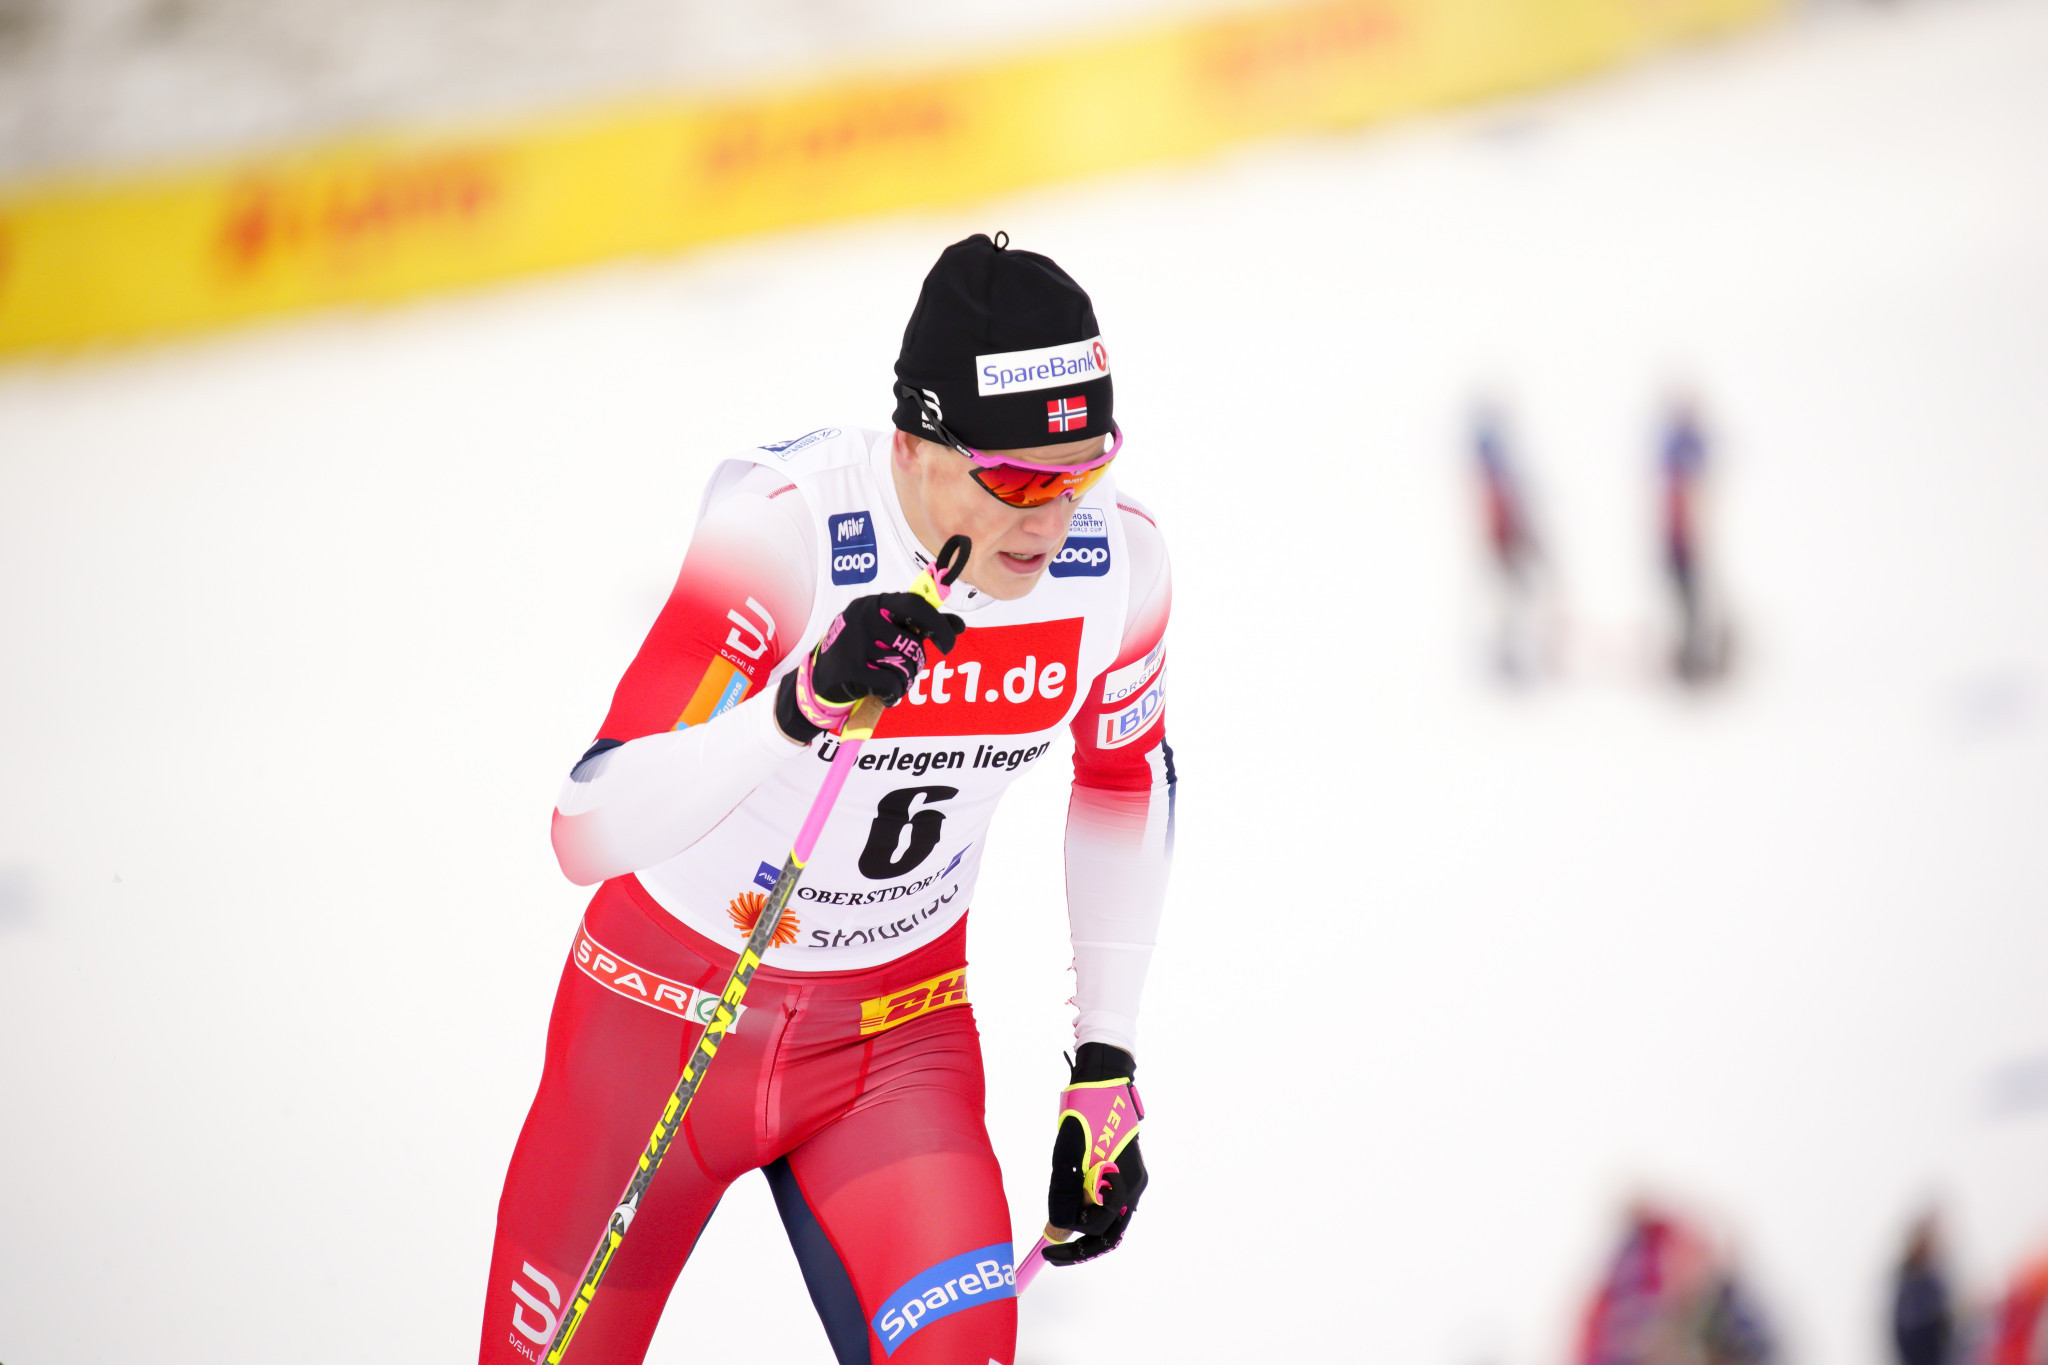 Klaebo receives trophy and medal following abrupt end to FIS cross-country season